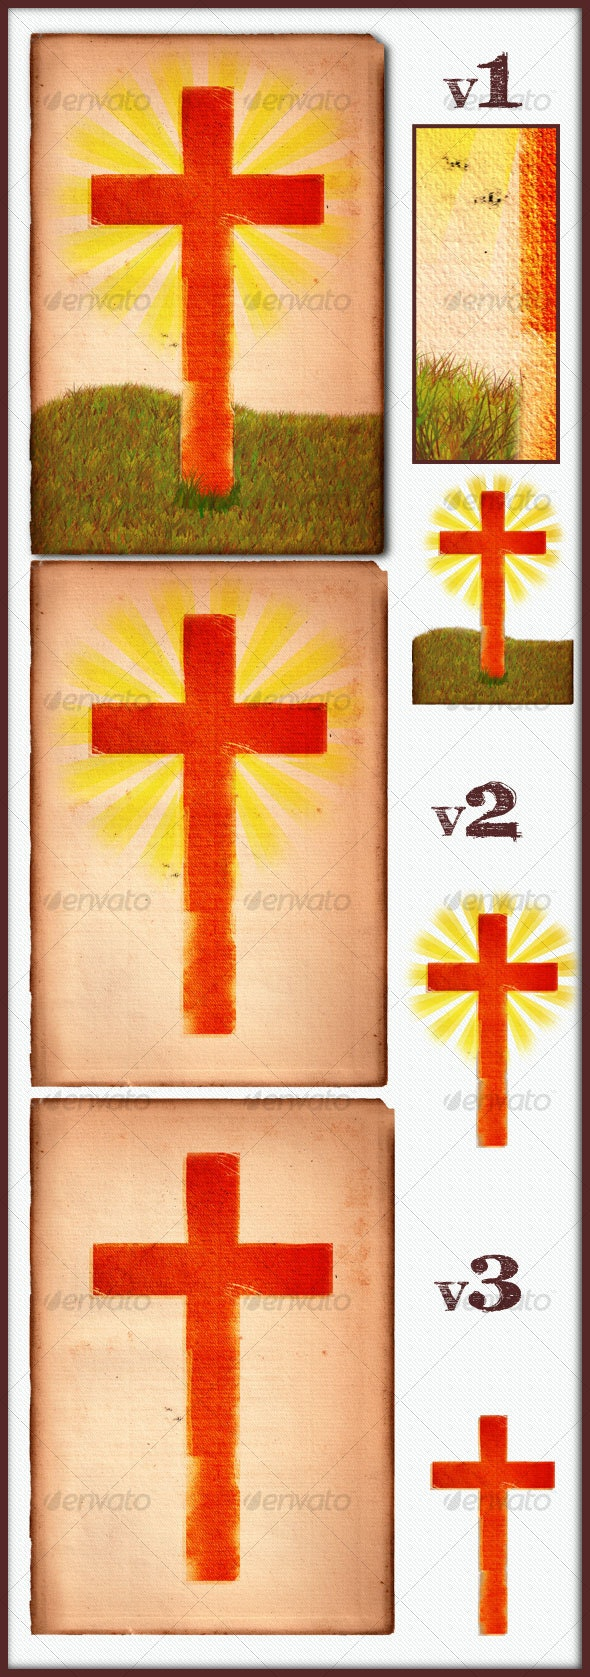 VINTAGE AGED PAPER WITH CROSS PACK - Miscellaneous Illustrations